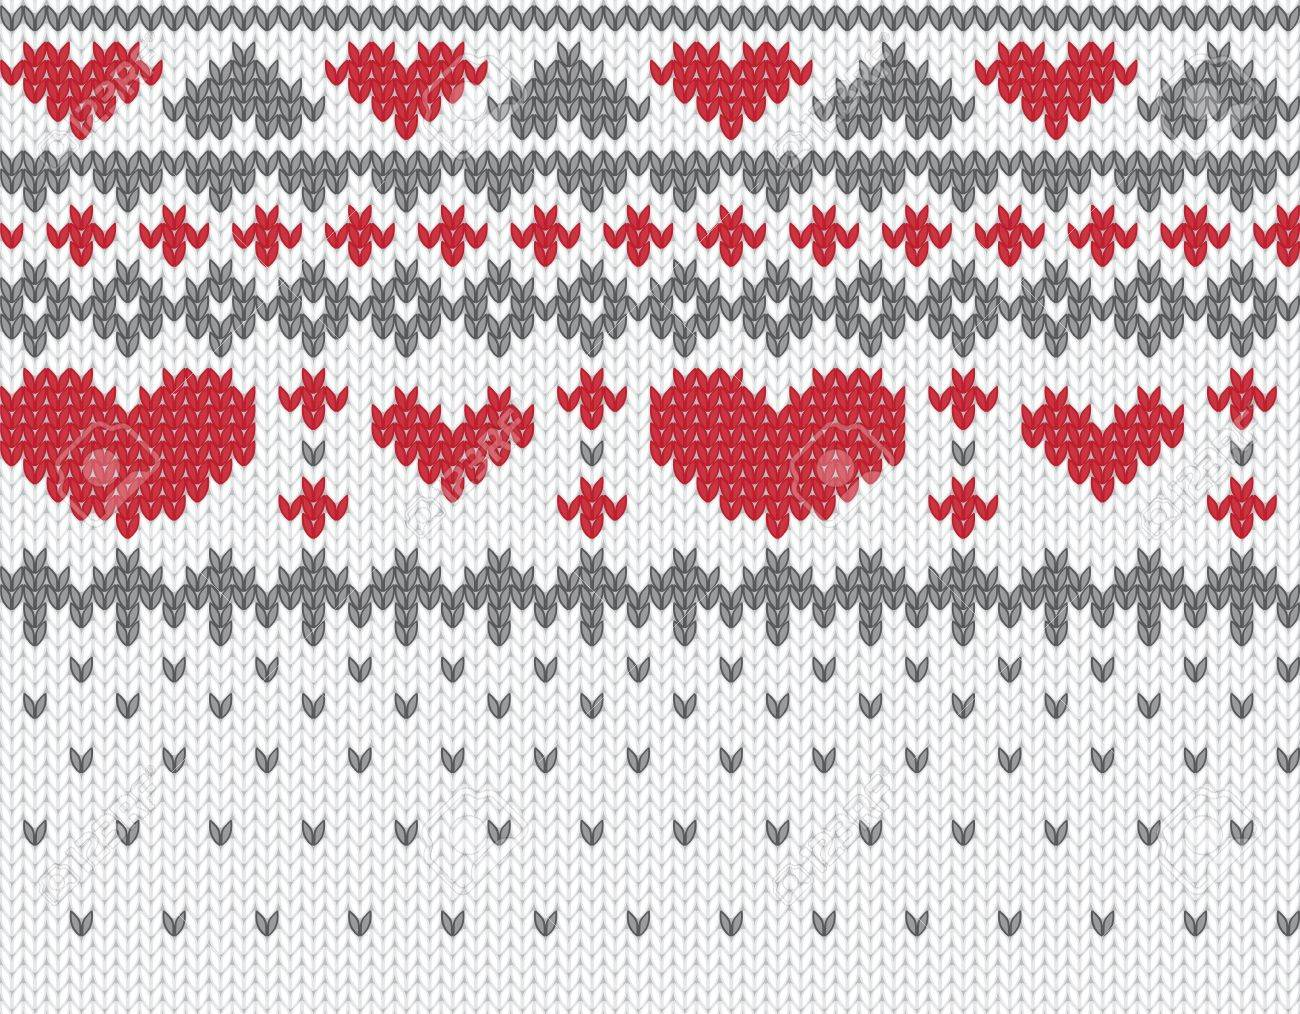 Seamless knitted pattern for winter clothing. Vector illustration. Stock Vector - 11967532